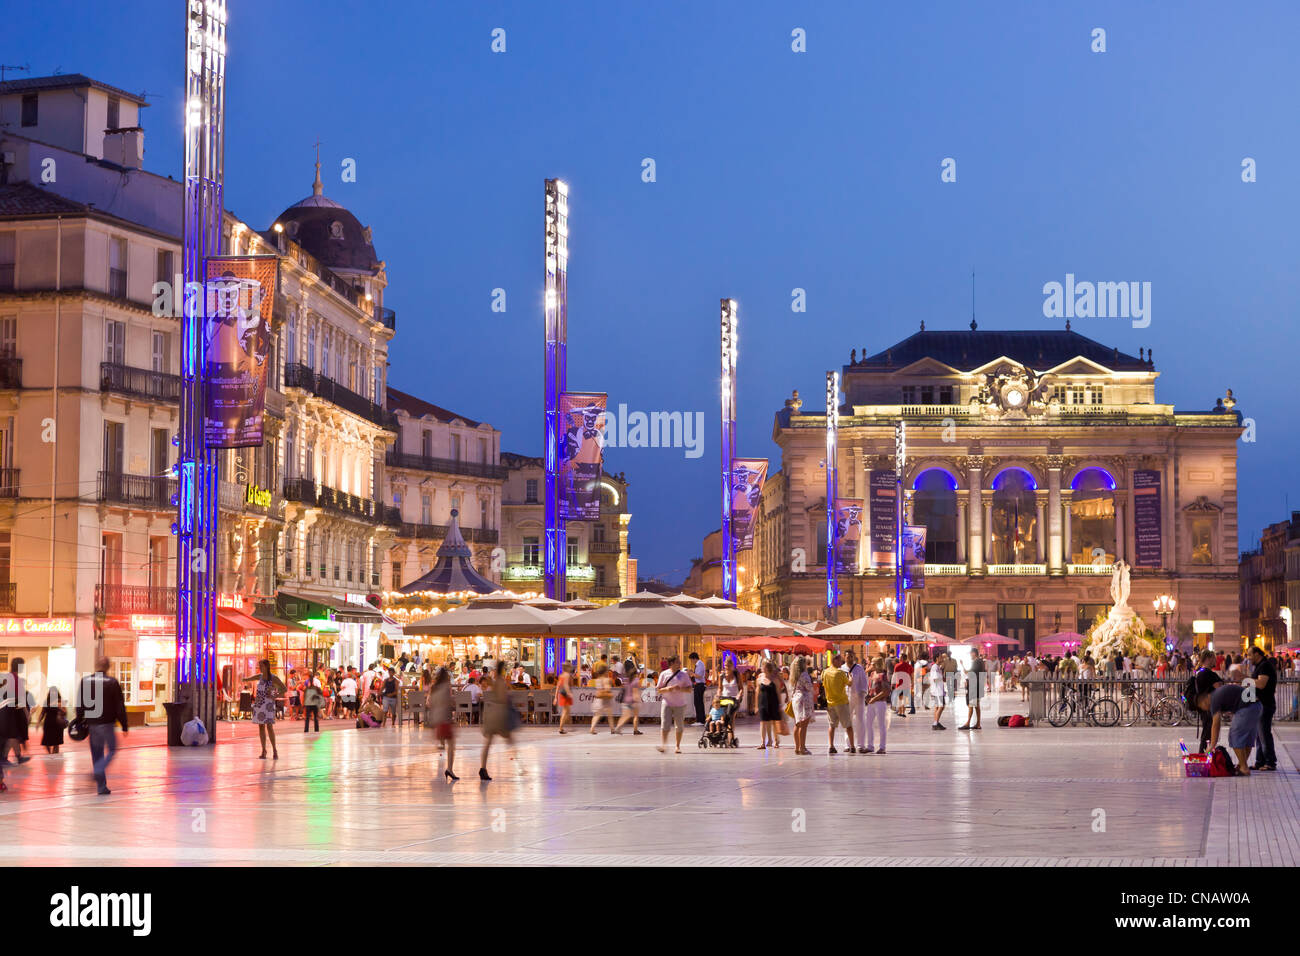 France, Herault, Montpellier, historical center, the Ecusson, Place de la Comedie (Comedy Square), the Opera Stock Photo